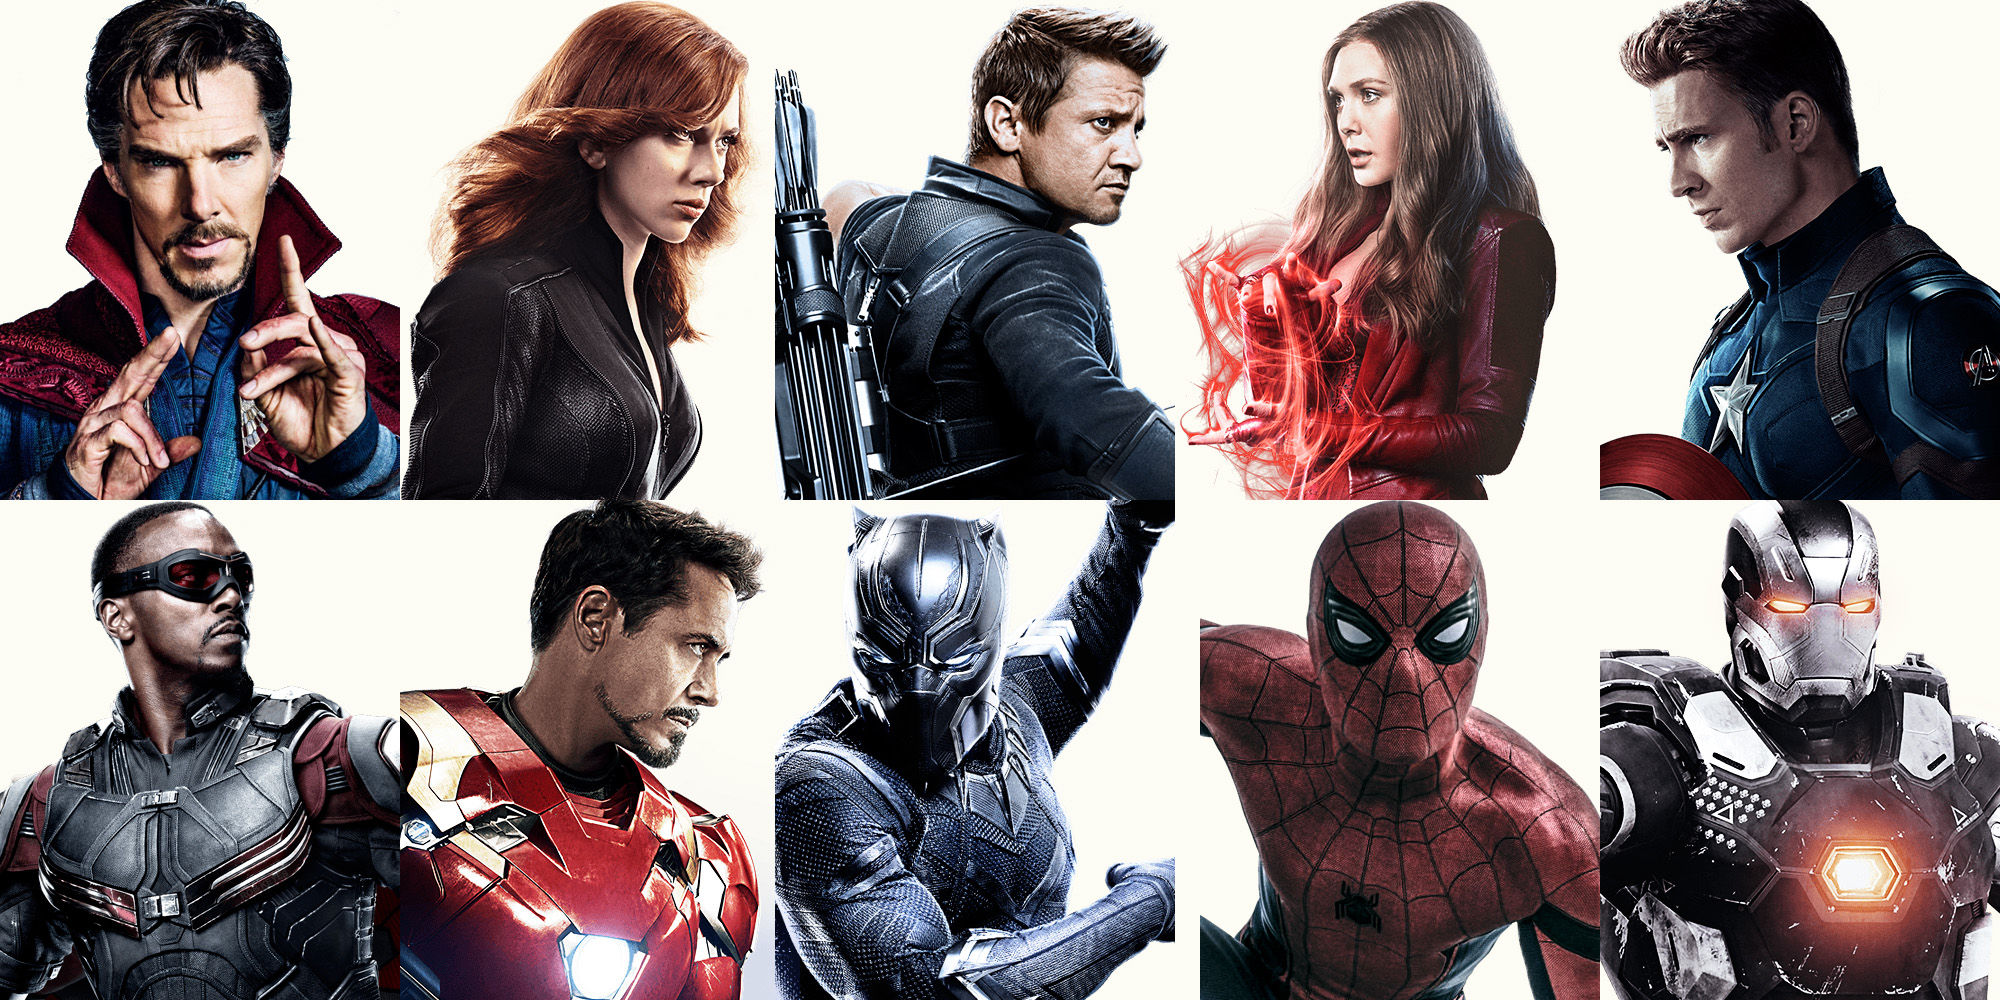 Avengers 3 characters